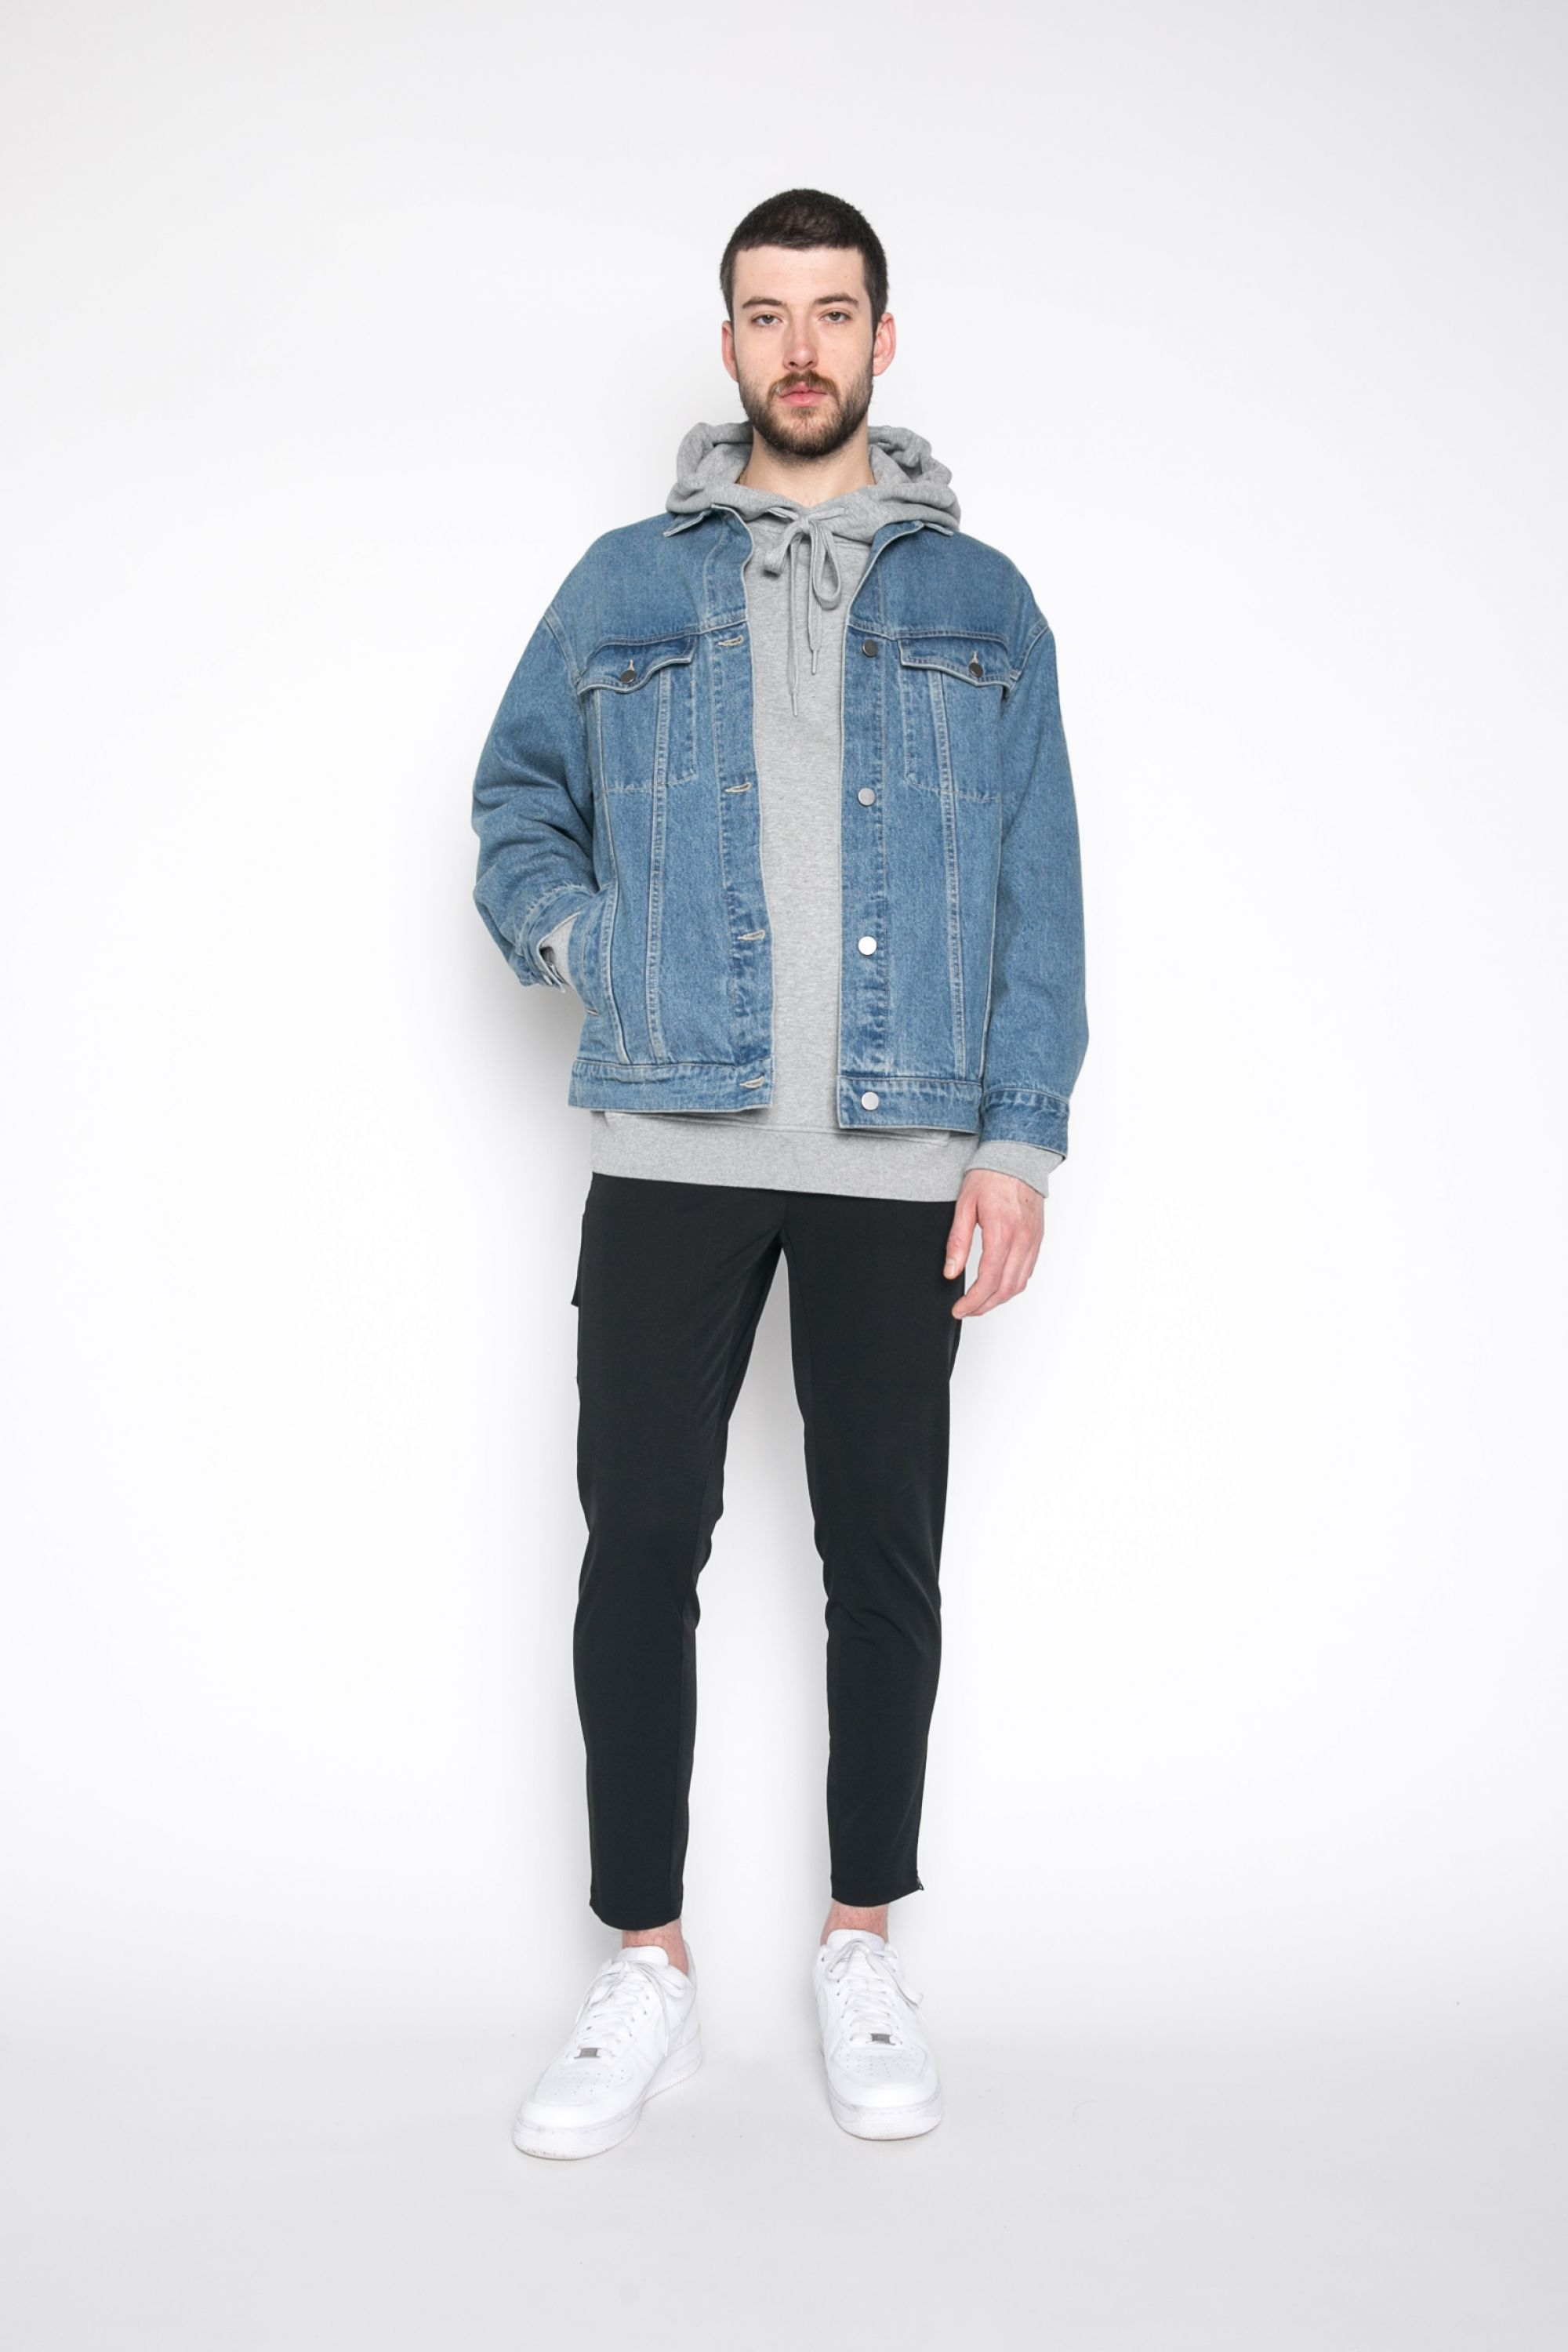 New Mens Oak Fort Man Spring 2017 Denim Jacket 1181 In 2020 Streetwear Men Outfits Men Fashion Casual Outfits Mens Fashion Streetwear [ 3000 x 2000 Pixel ]